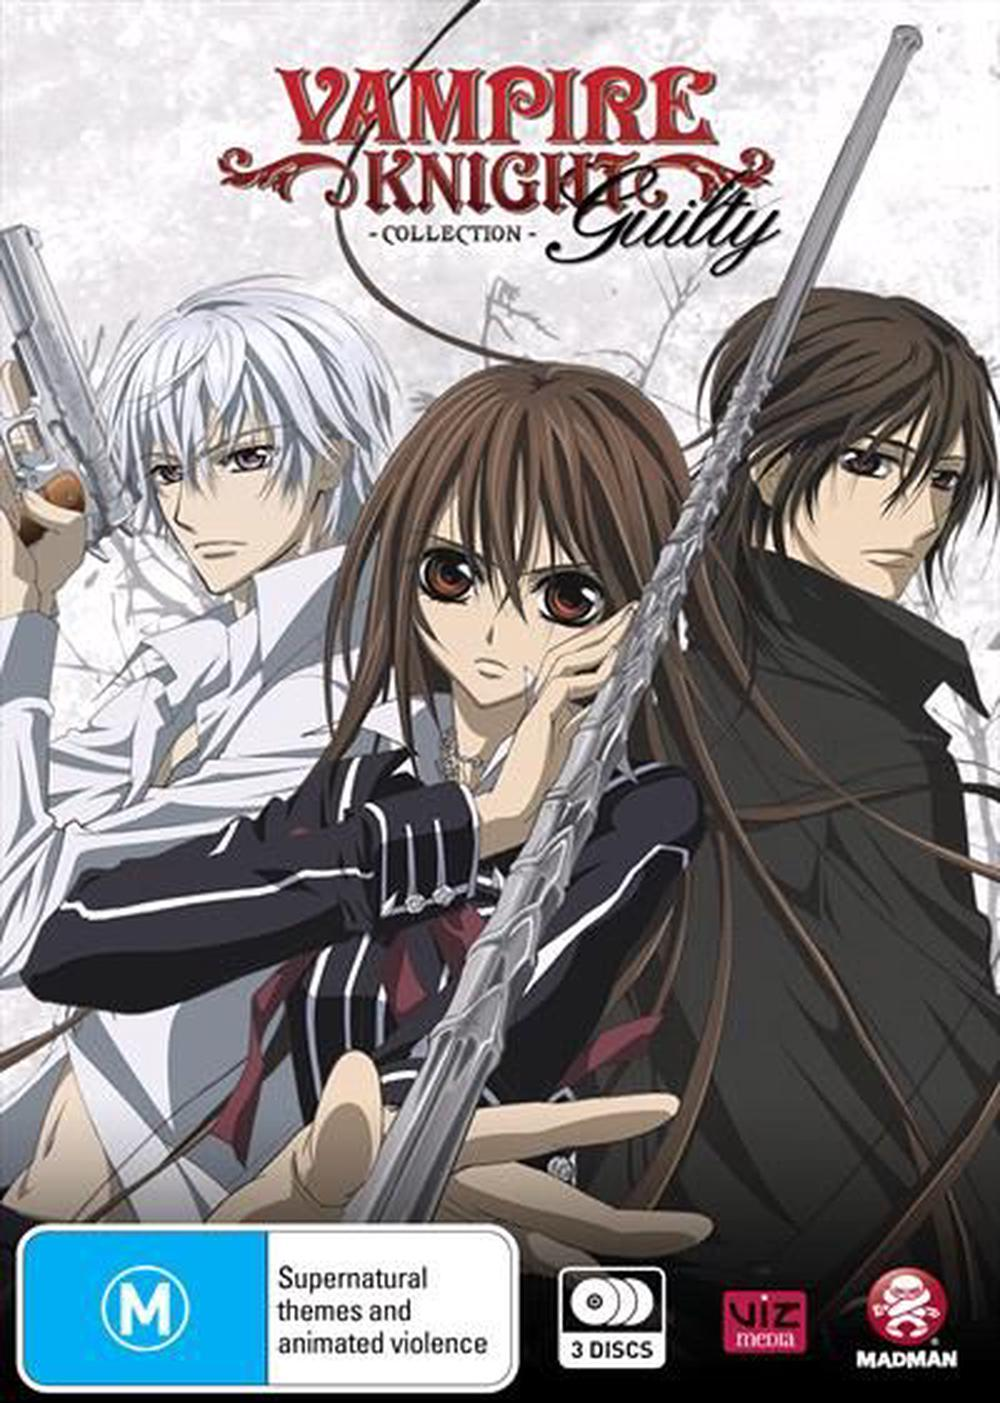 Vampire Knight Guilty : Season 2, DVD | Buy online at The Nile